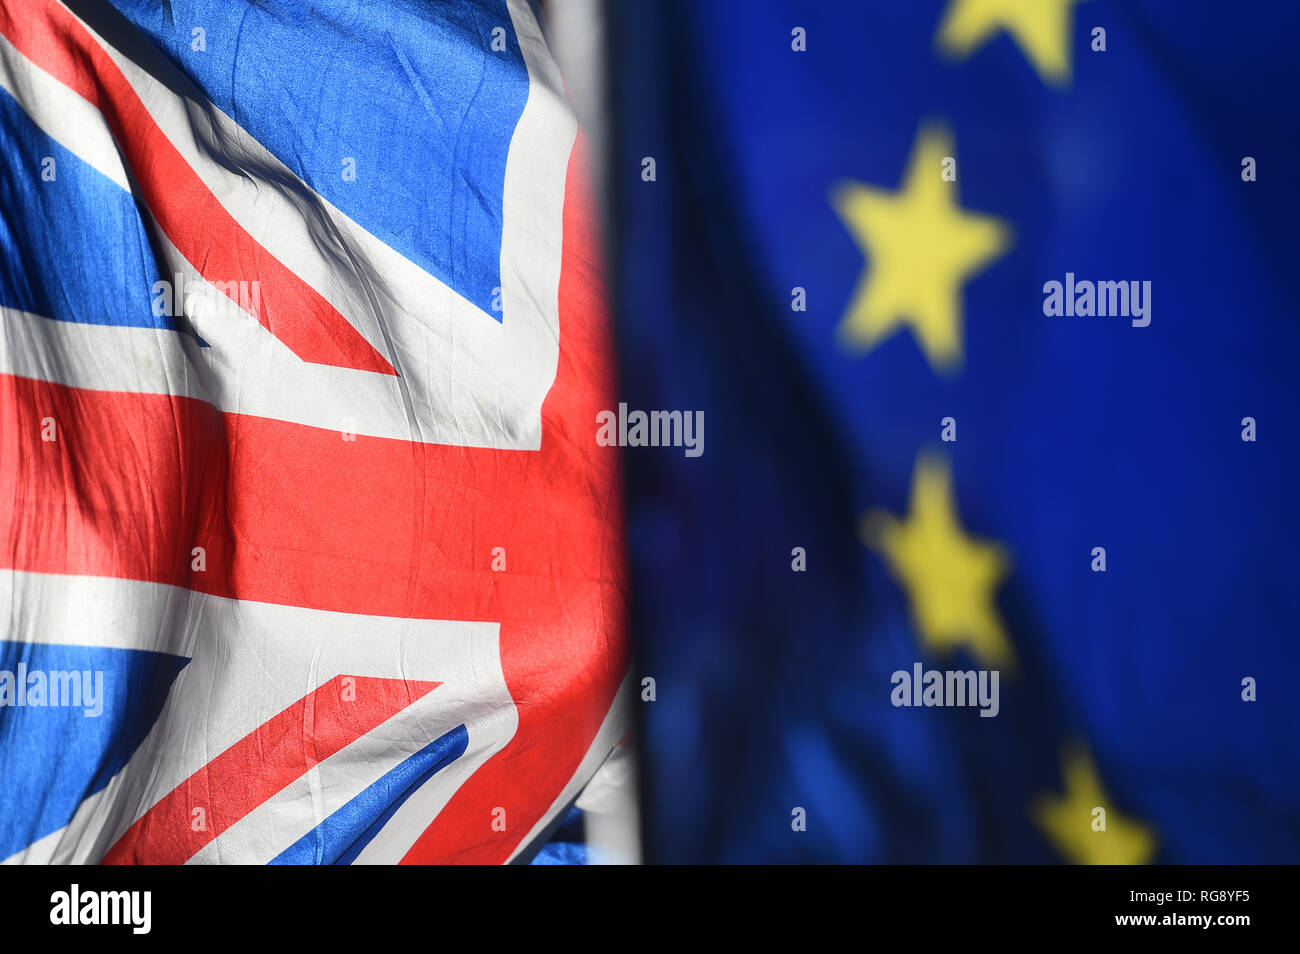 Union and European Union flags are flown outside the Houses of Parliament, London. - Stock Image